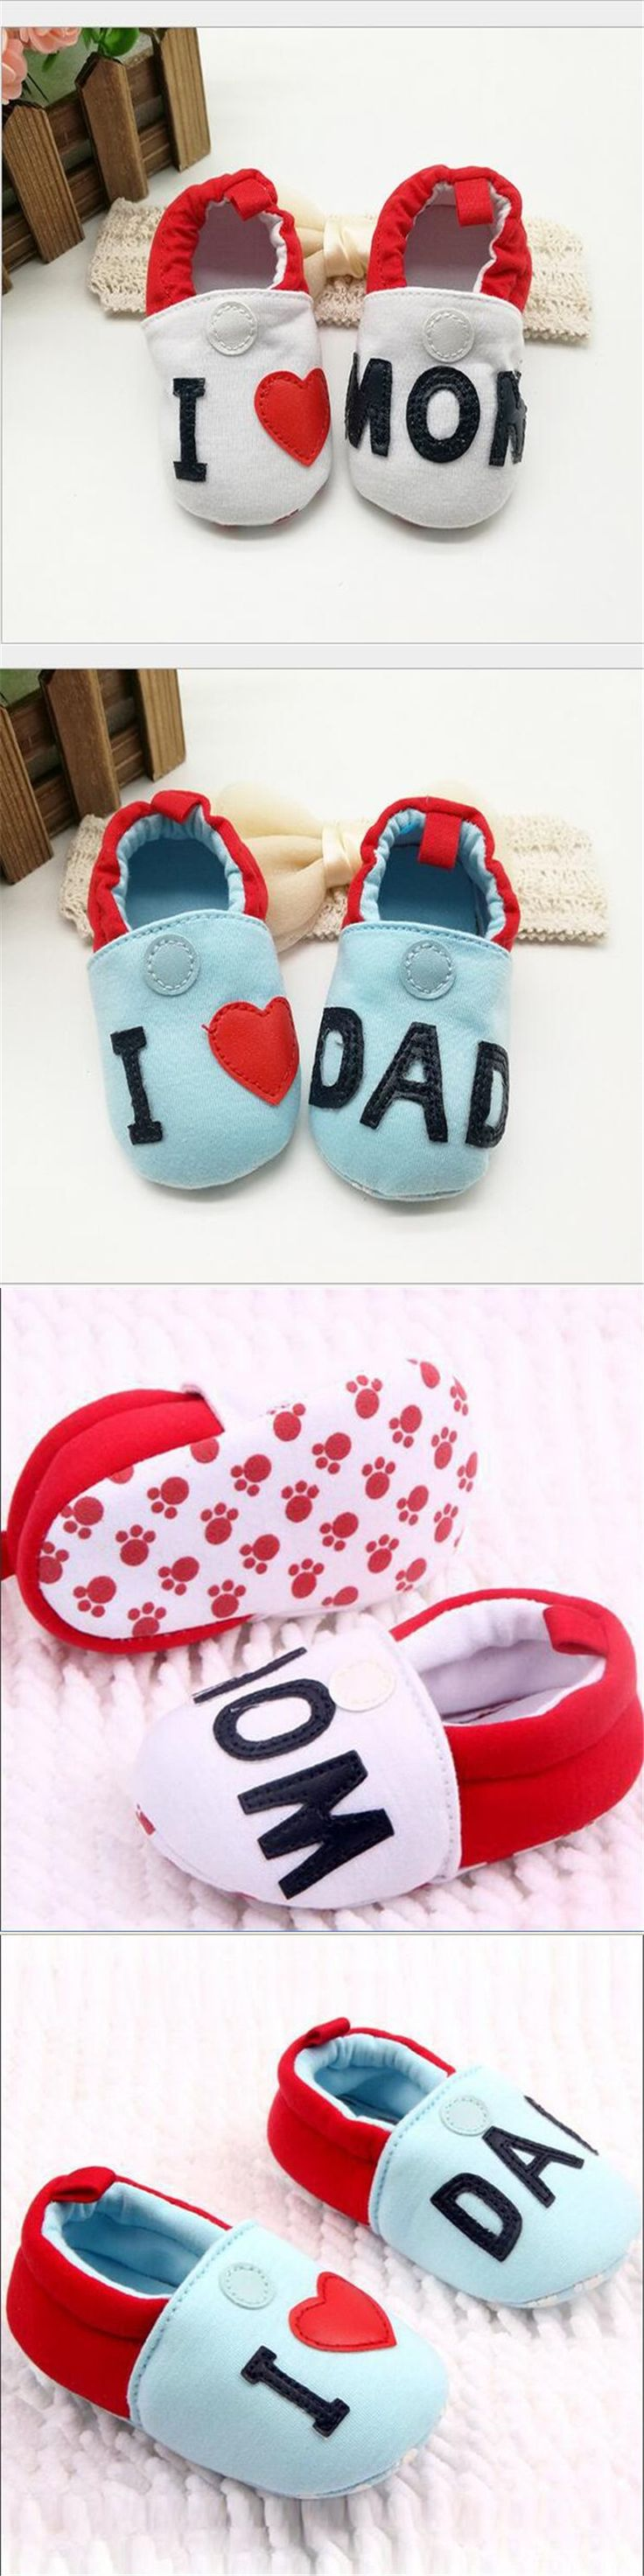 Cute Toddler First Walkers Baby shoes Round Toe Flats Soft Slippers Shoes I Love MOM/DAD Fast Shipping C10